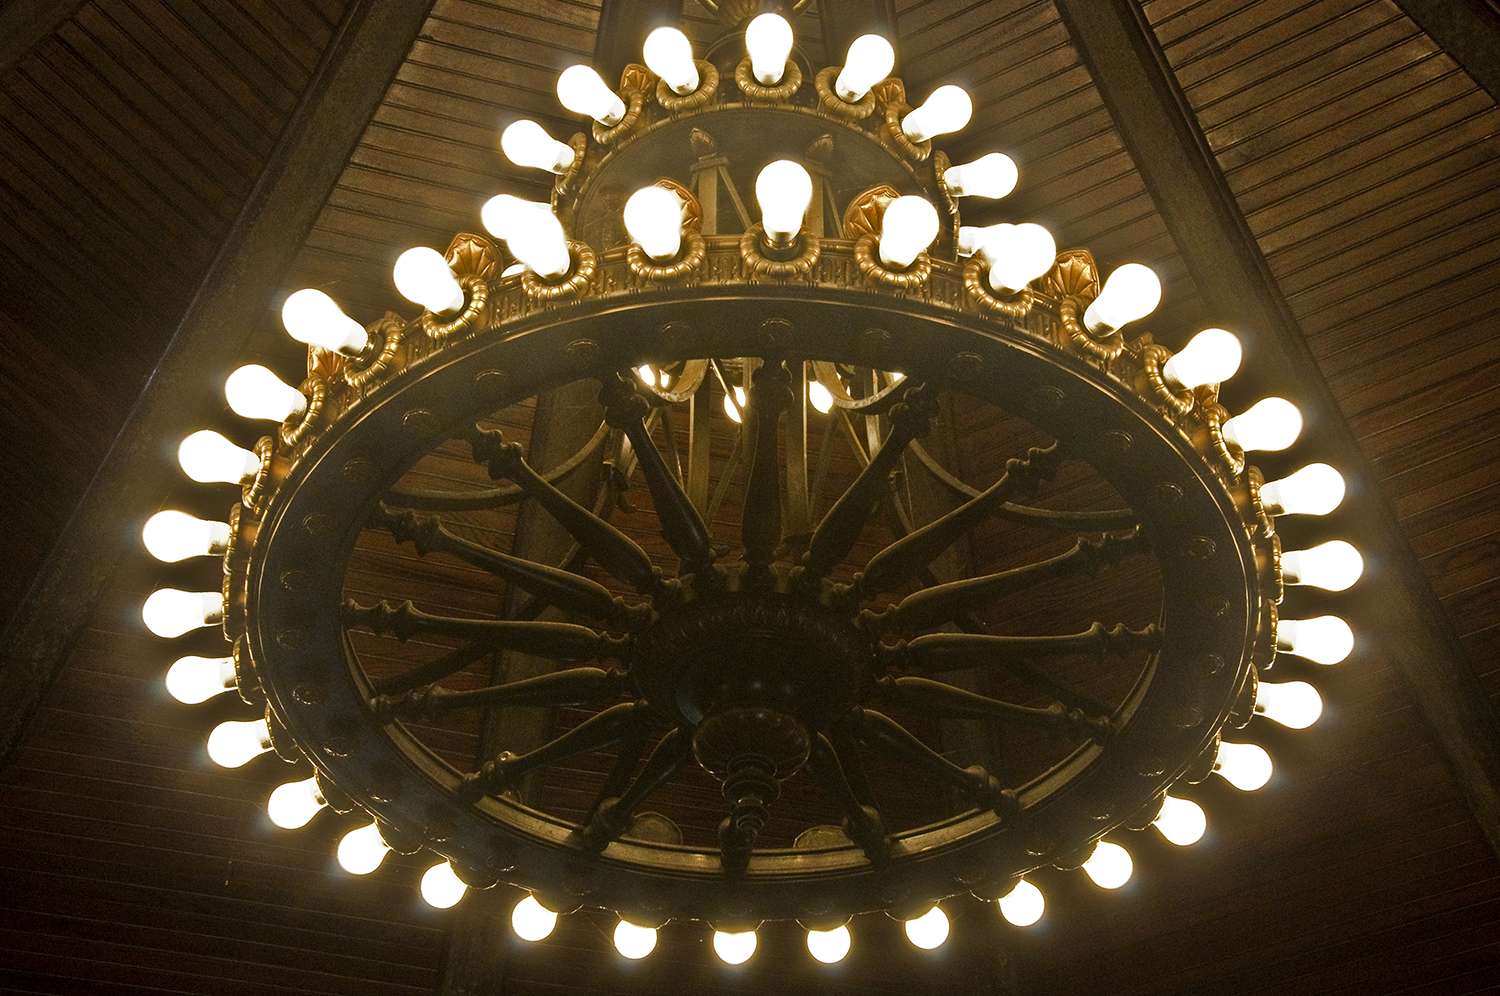 Detail of the second floor chandelier and ceiling